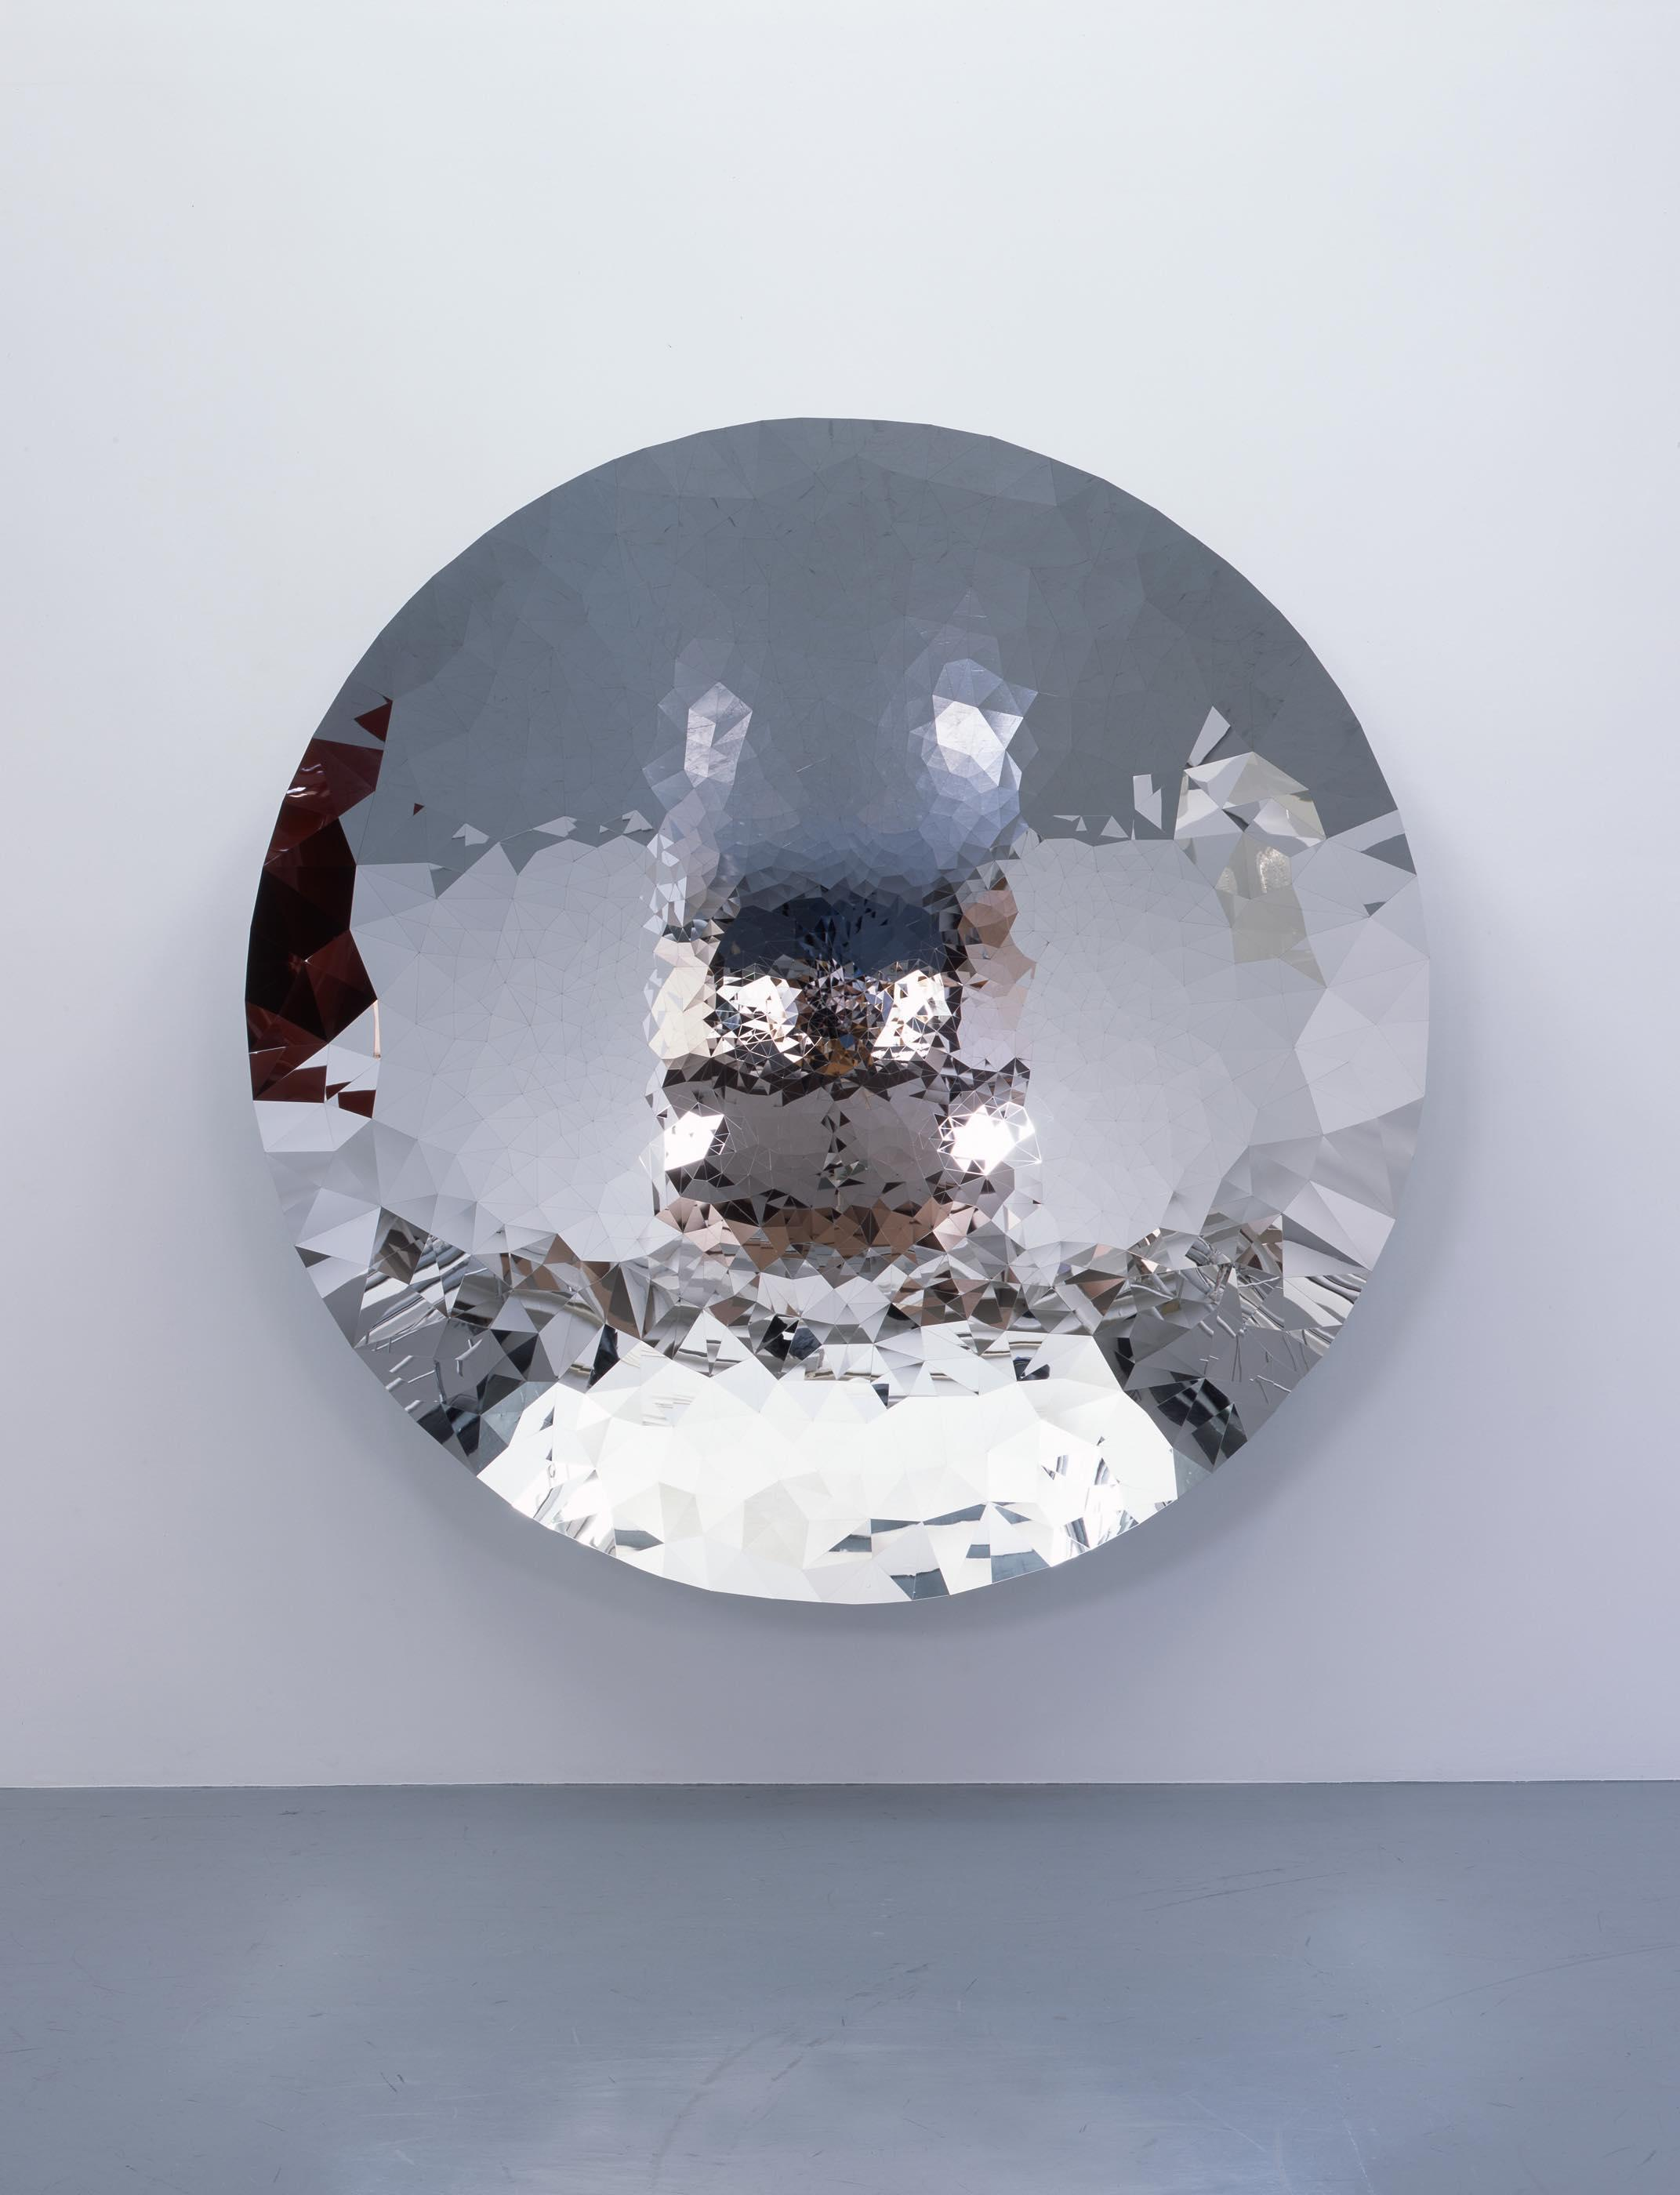 Untitled, 2010, Stainless Steel, 230 x 230 x 44 cm, Photo: Keizo Kioku